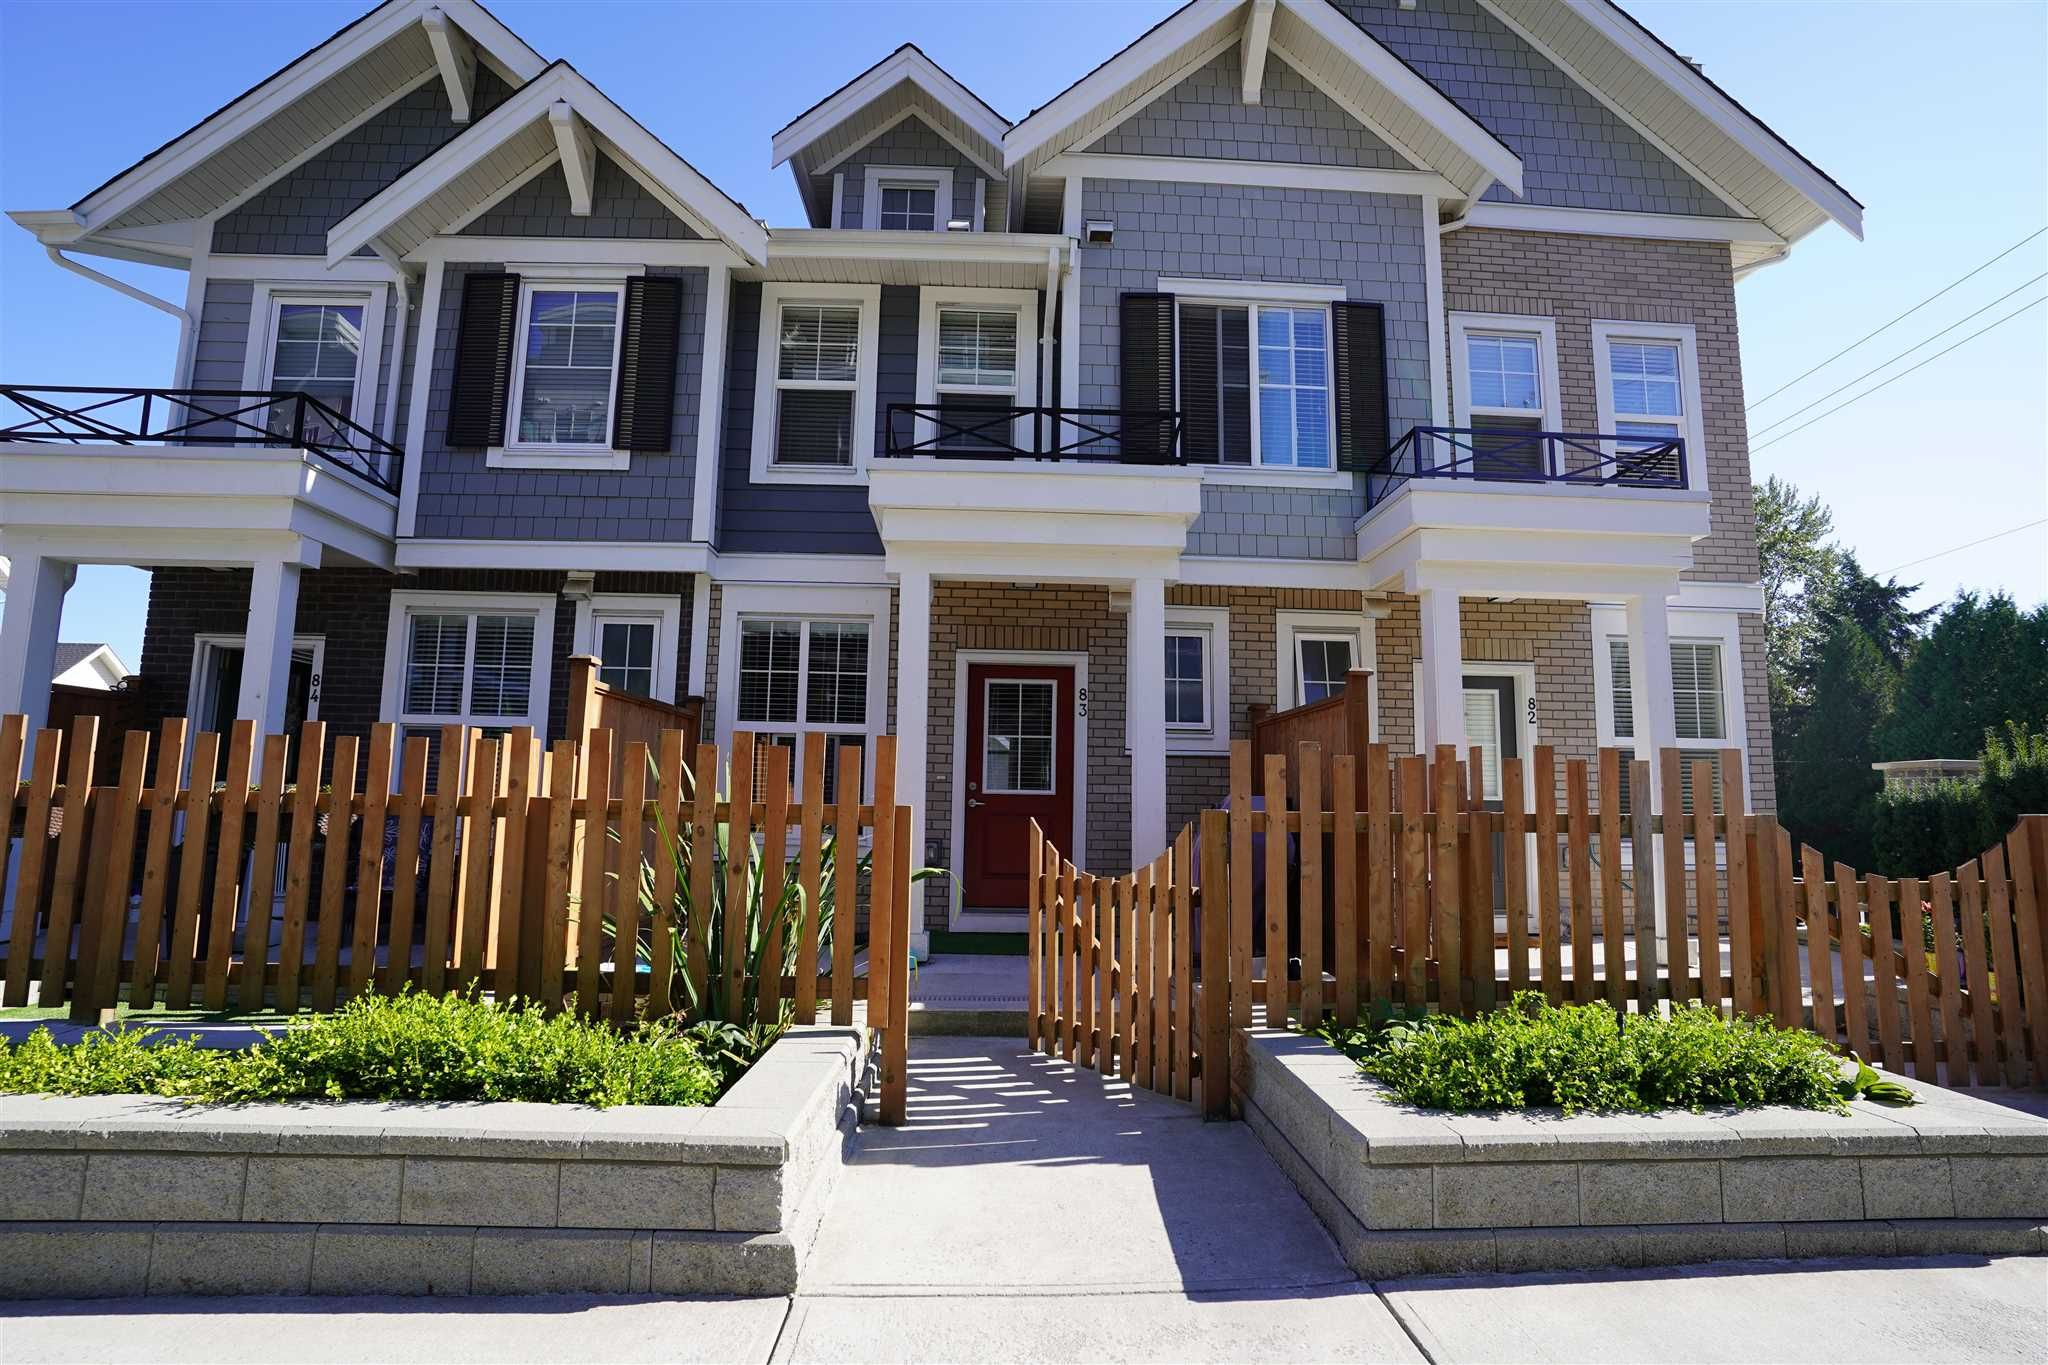 Main Photo: 83 7169 208A Street in Langley: Willoughby Heights Townhouse for sale : MLS®# R2604551